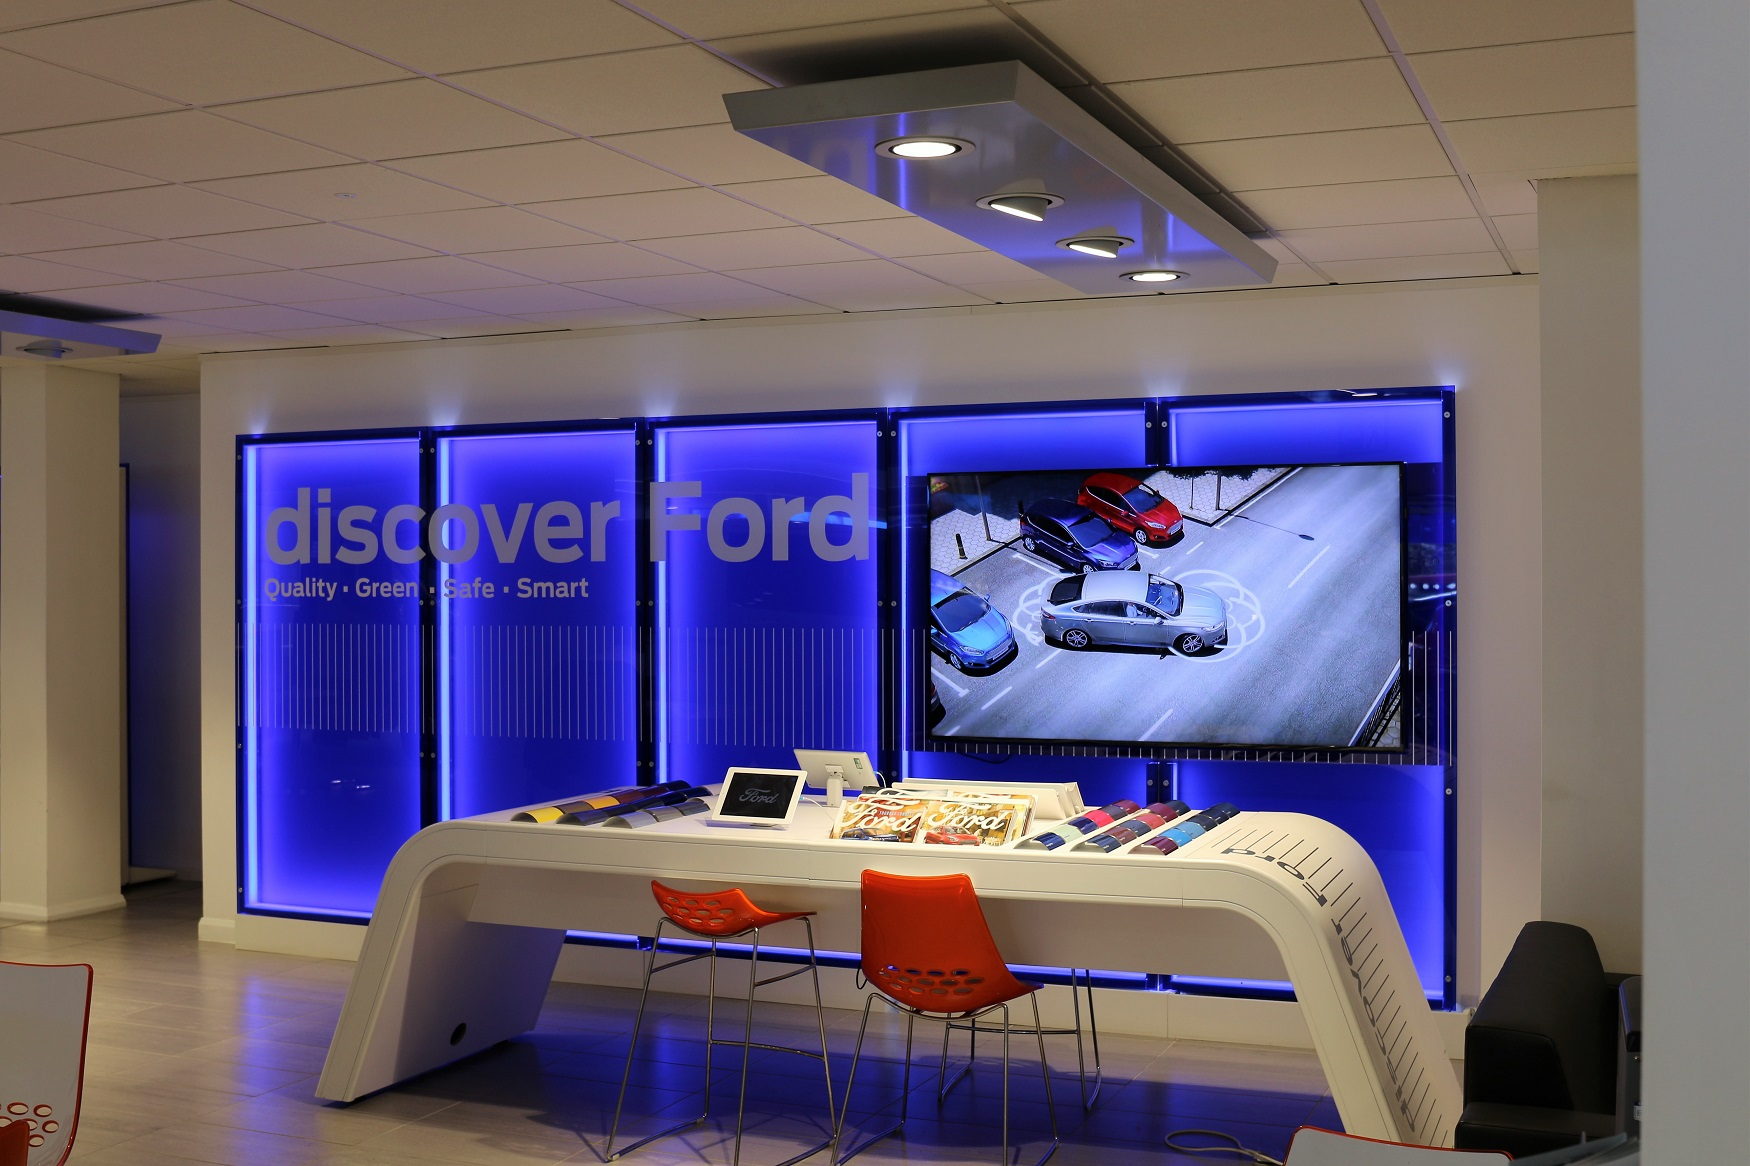 Discover Ford are in Cosham showroom